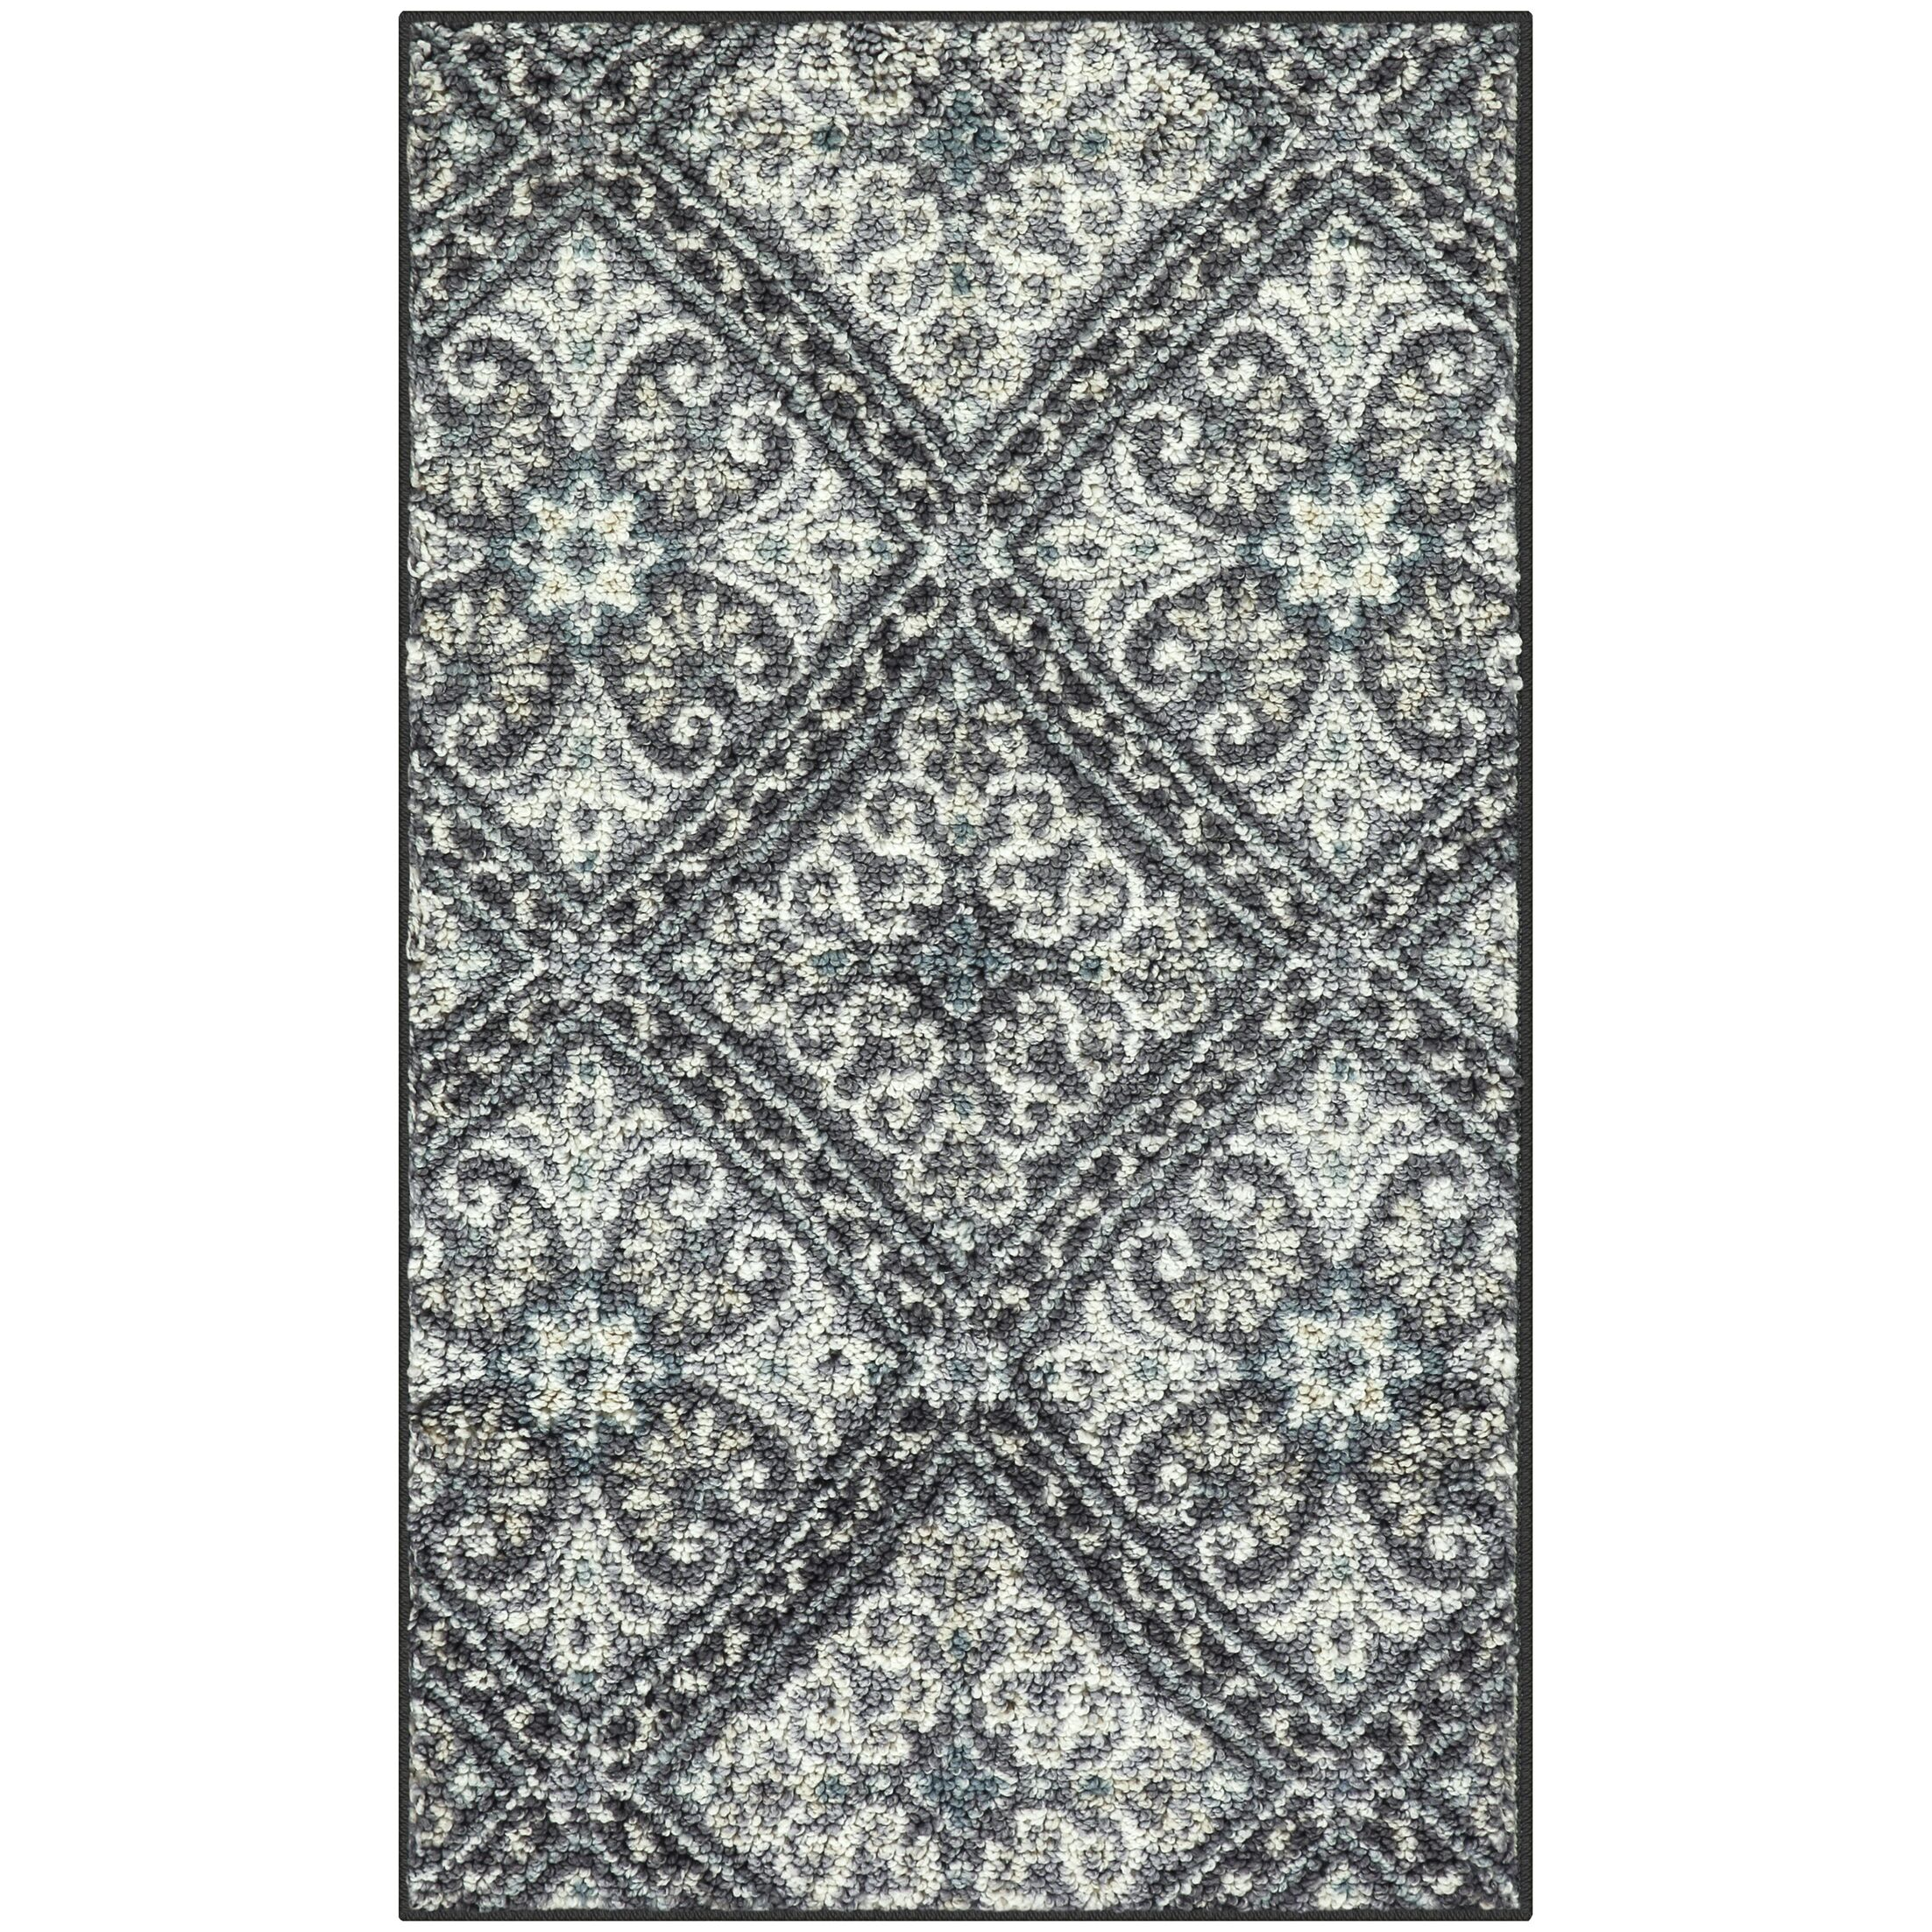 Borquez Gray/Blue Area Rug Rug Size: Rectangle 5' x 7'